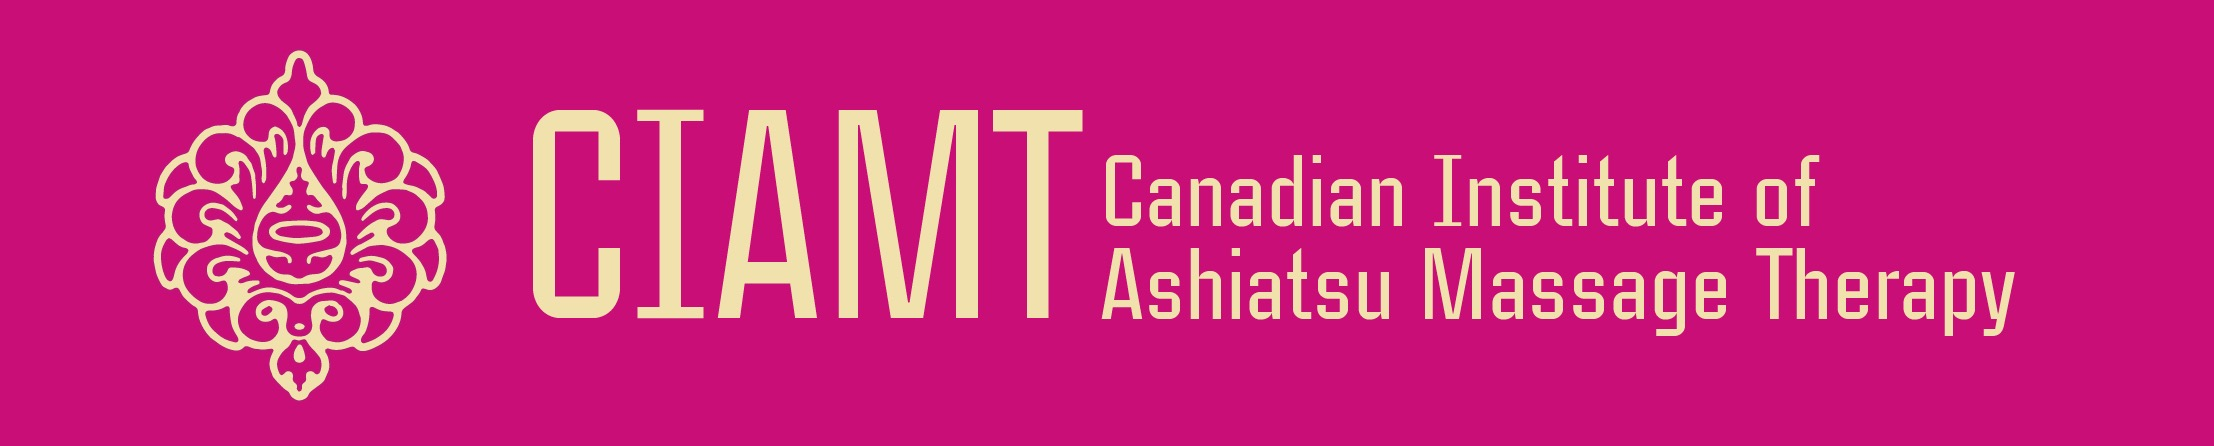 Canadian Institute of Ashiatsu Massage Therapy (CIAMT)